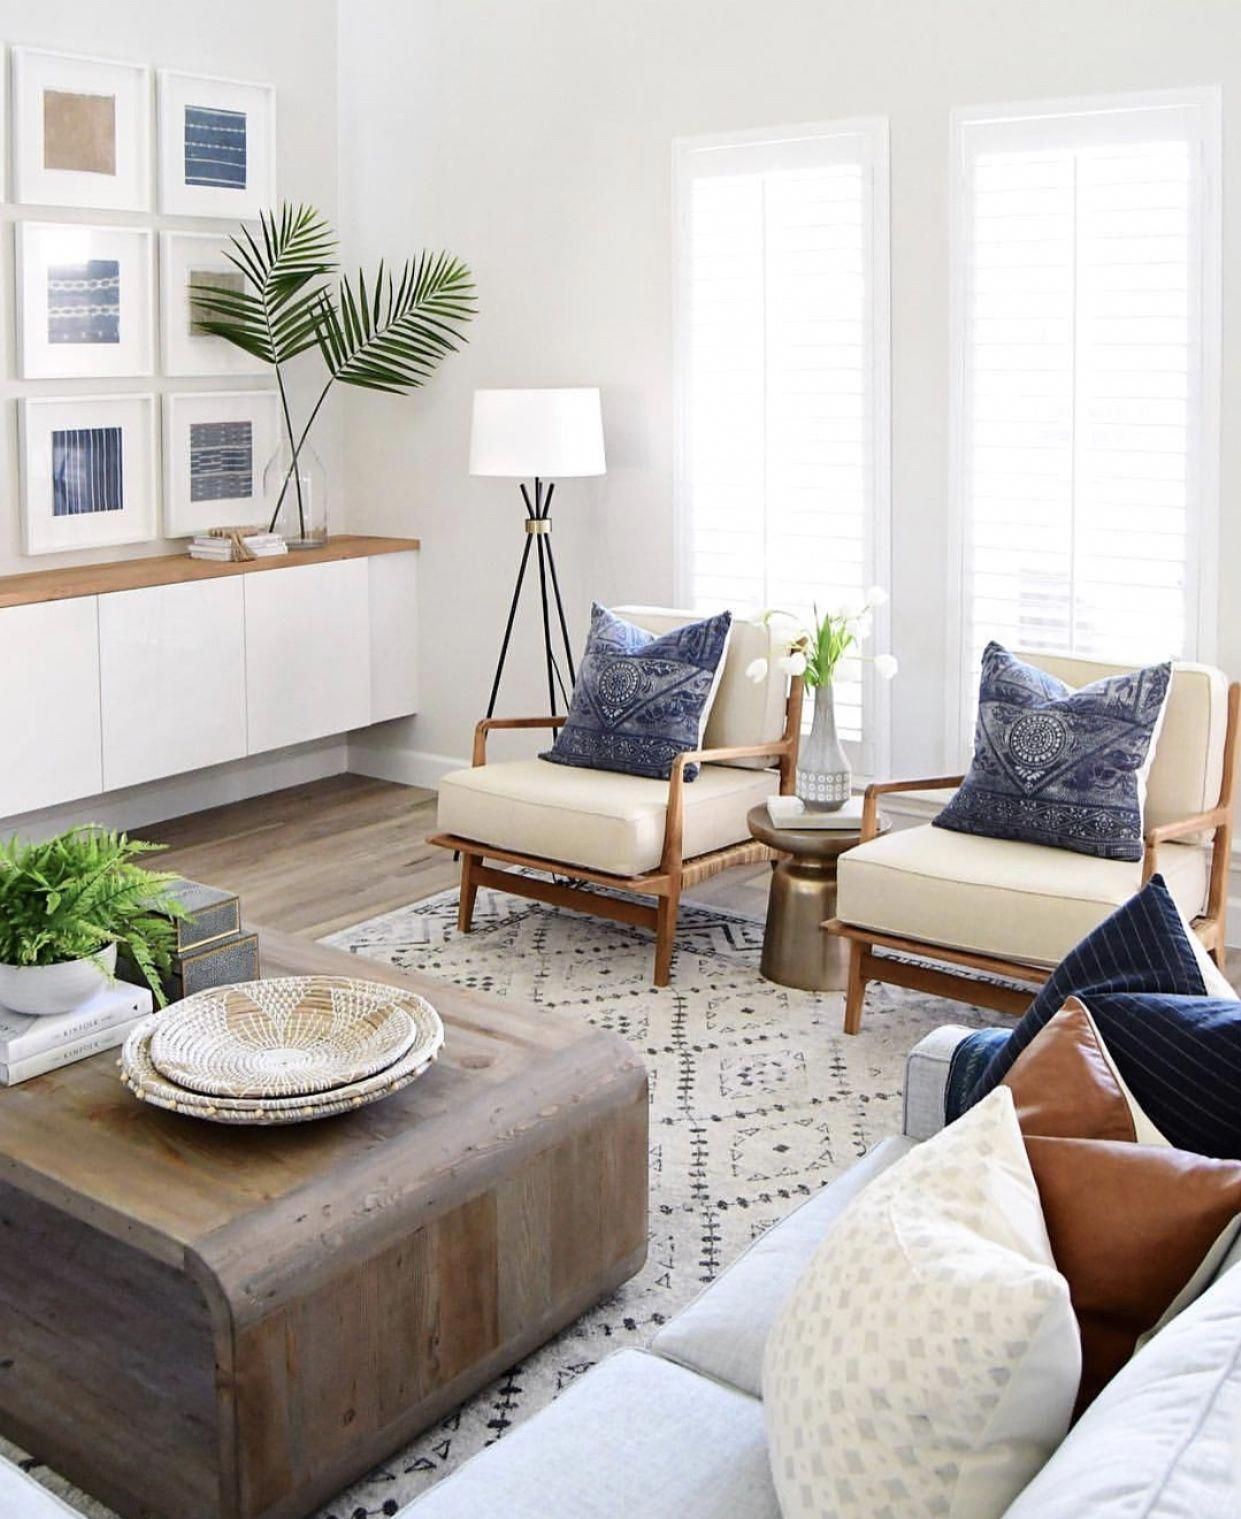 Design your bedroom home interior ideas for living room show decorating also rh in pinterest